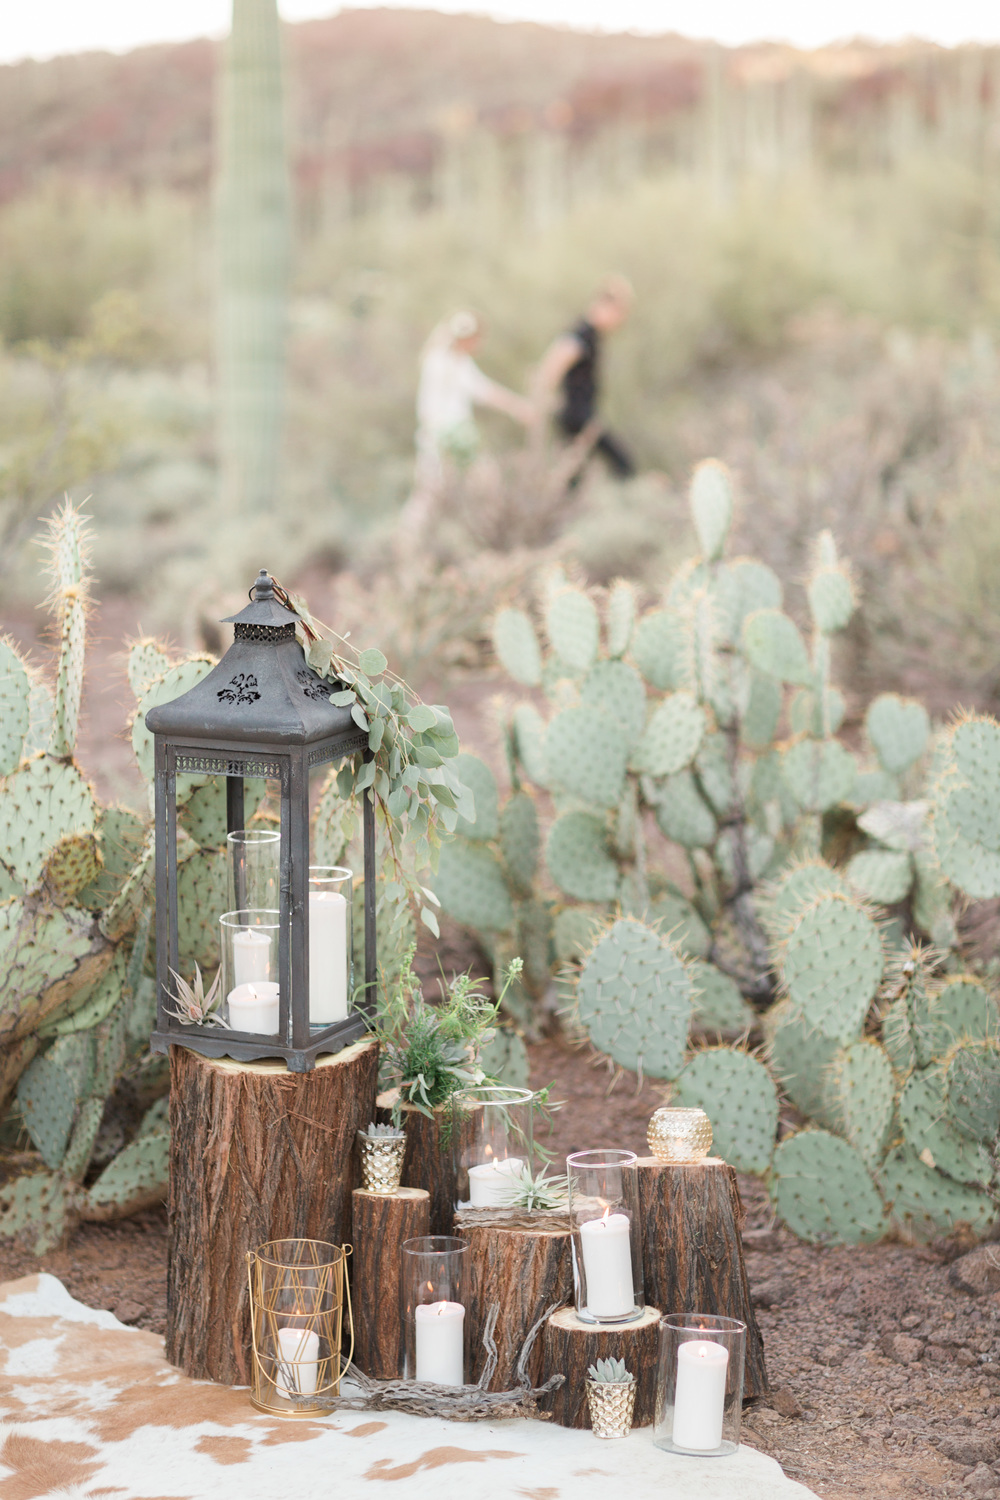 Romantic desert anniversary session. Wood stumps with candles, lanterns and air plants. Beautiful prickly pear cactus in the background.